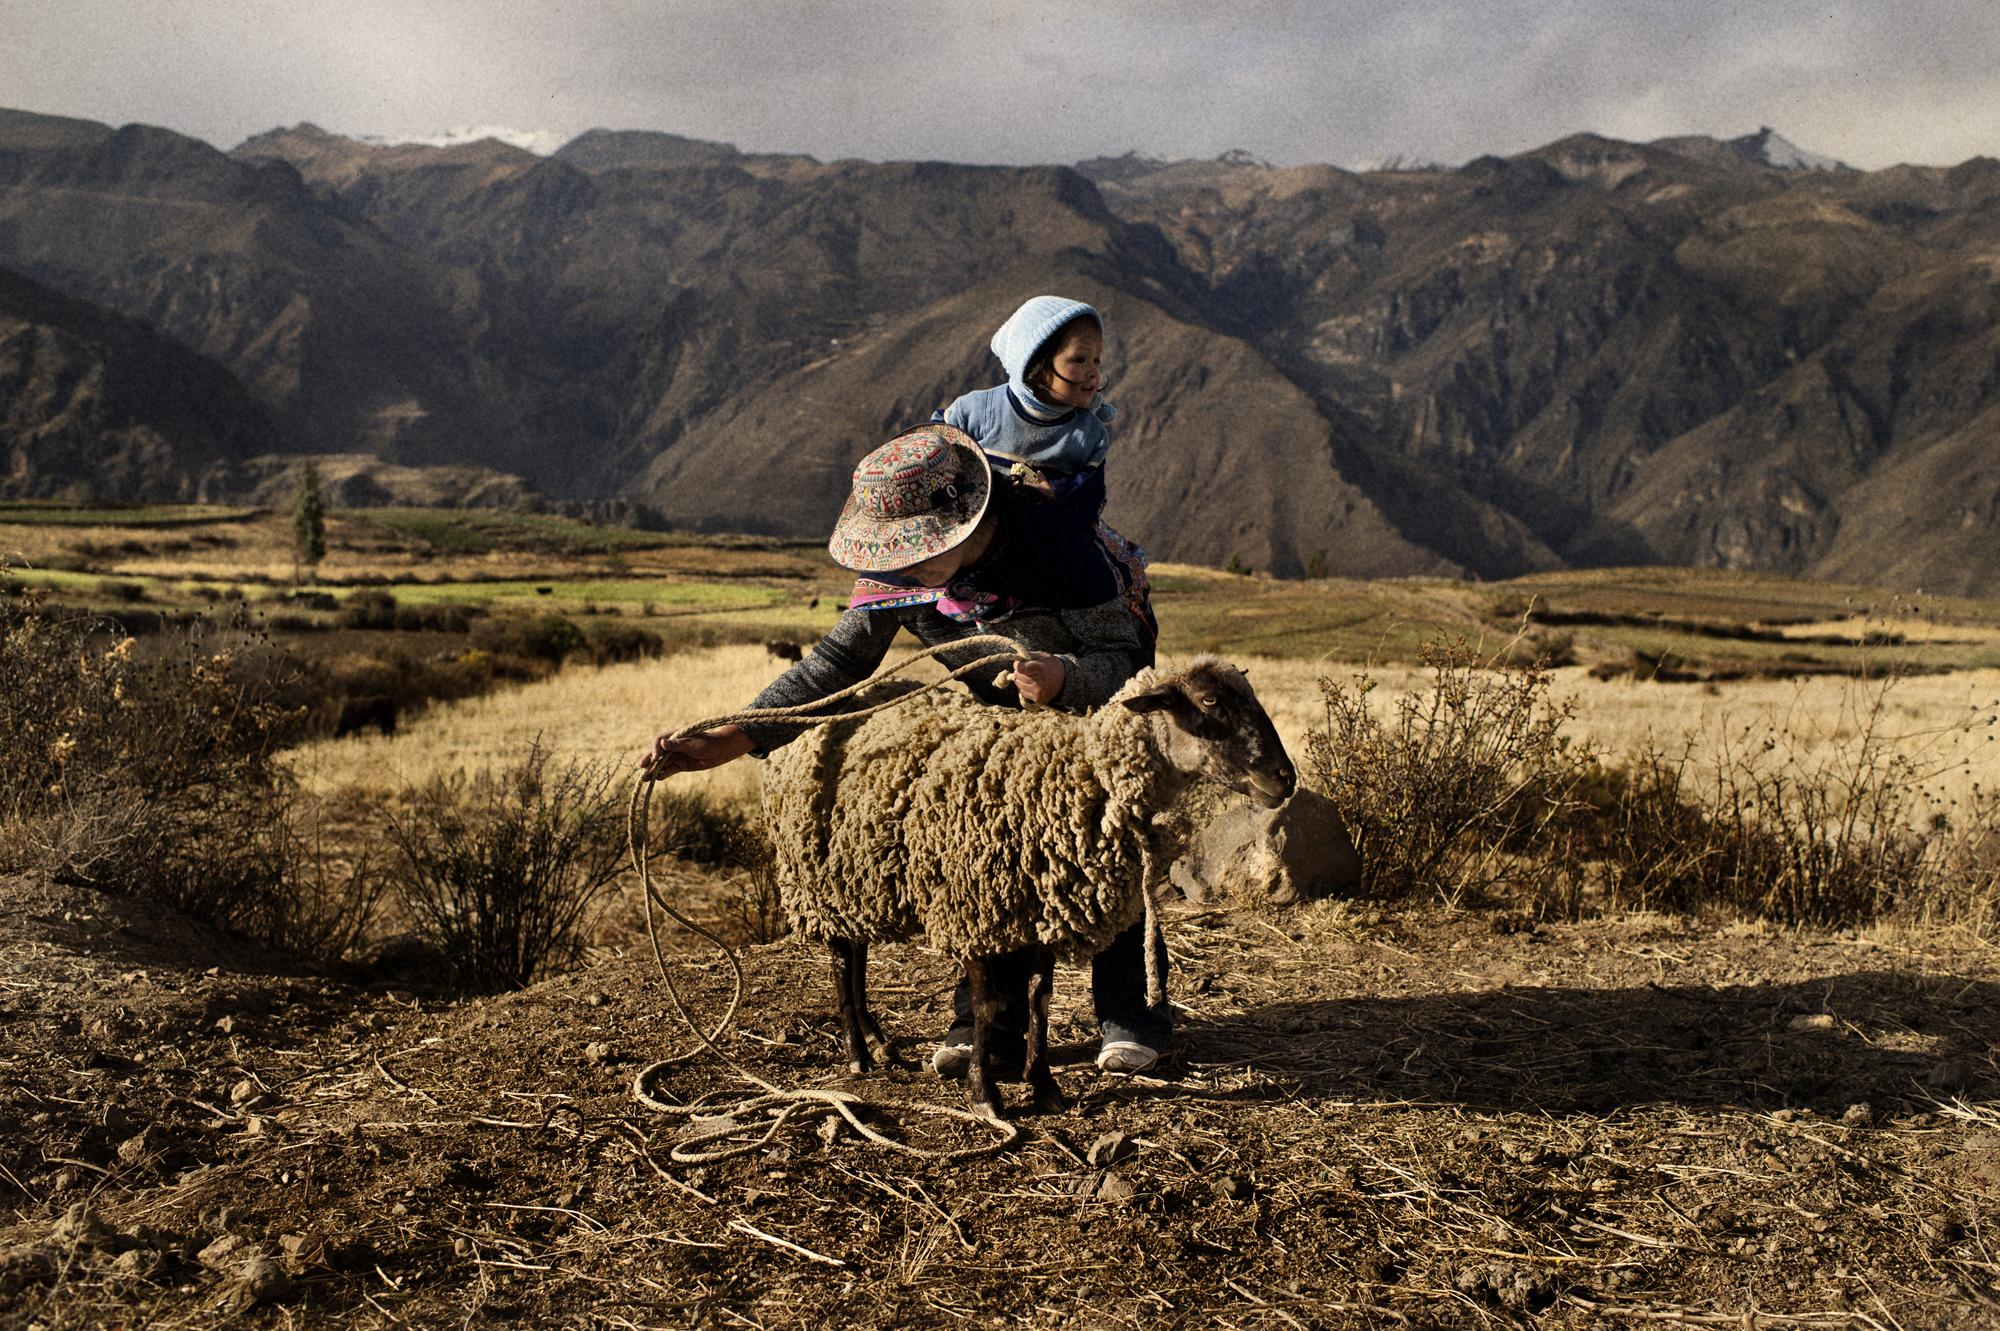 "Peru, Pinchollo, Distrito Cabanaconde, Chibai. September 2011 Betty with her son Bryan moving her sheep to another place. Betty�s husband dies two years ago, he was a musician and an alcoholic. Betty has now access to microcredit and she grows corn, lima beans and has sheep. Betty also makes artisanal figures to sell to the tourists. She lives alone with her son Bryan, her dream is to own a house of her own one day. Betty works all day long because it helps her not to think about her husband, ""I don�t feel sad when Im busy"".."